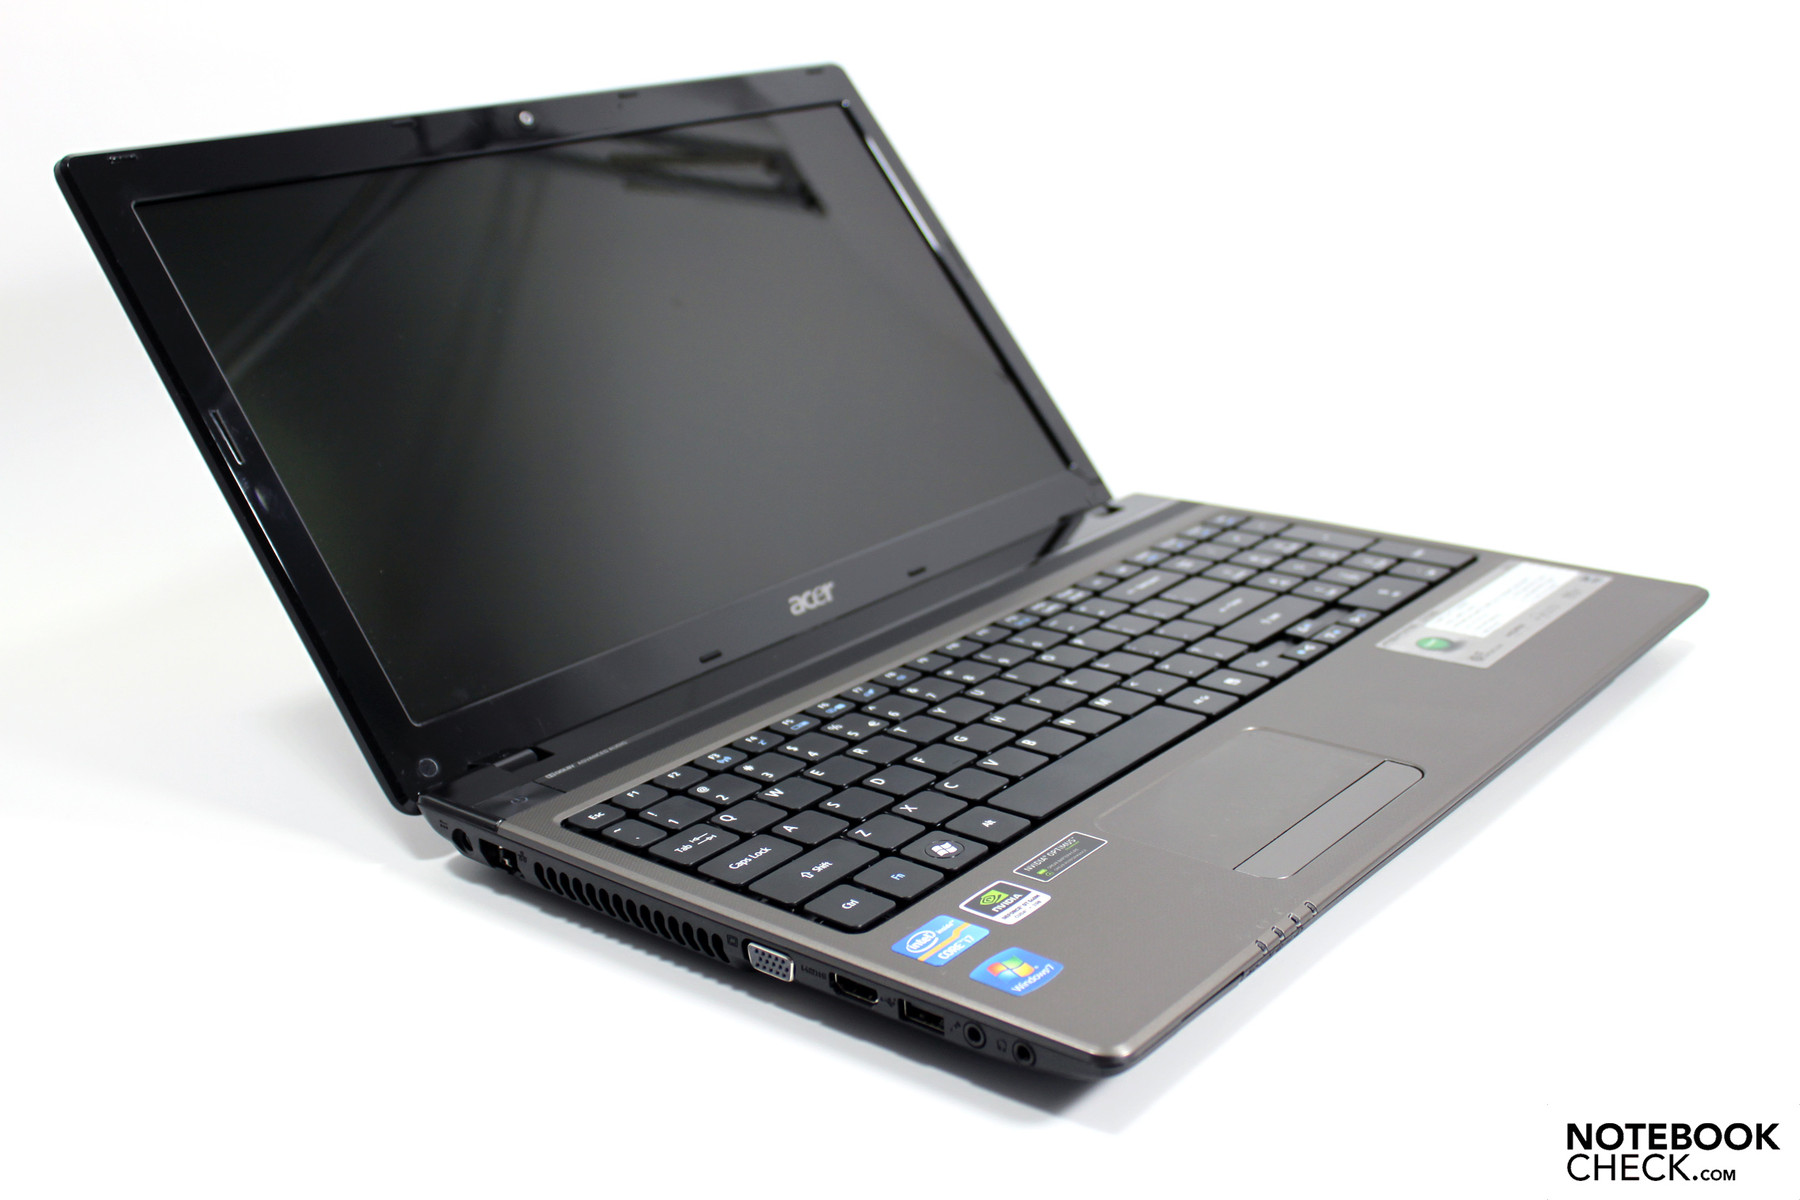 Acer laptop model aspire 5750g manual review acer aspire 5750g notebook notebookcheck reviews fandeluxe Gallery